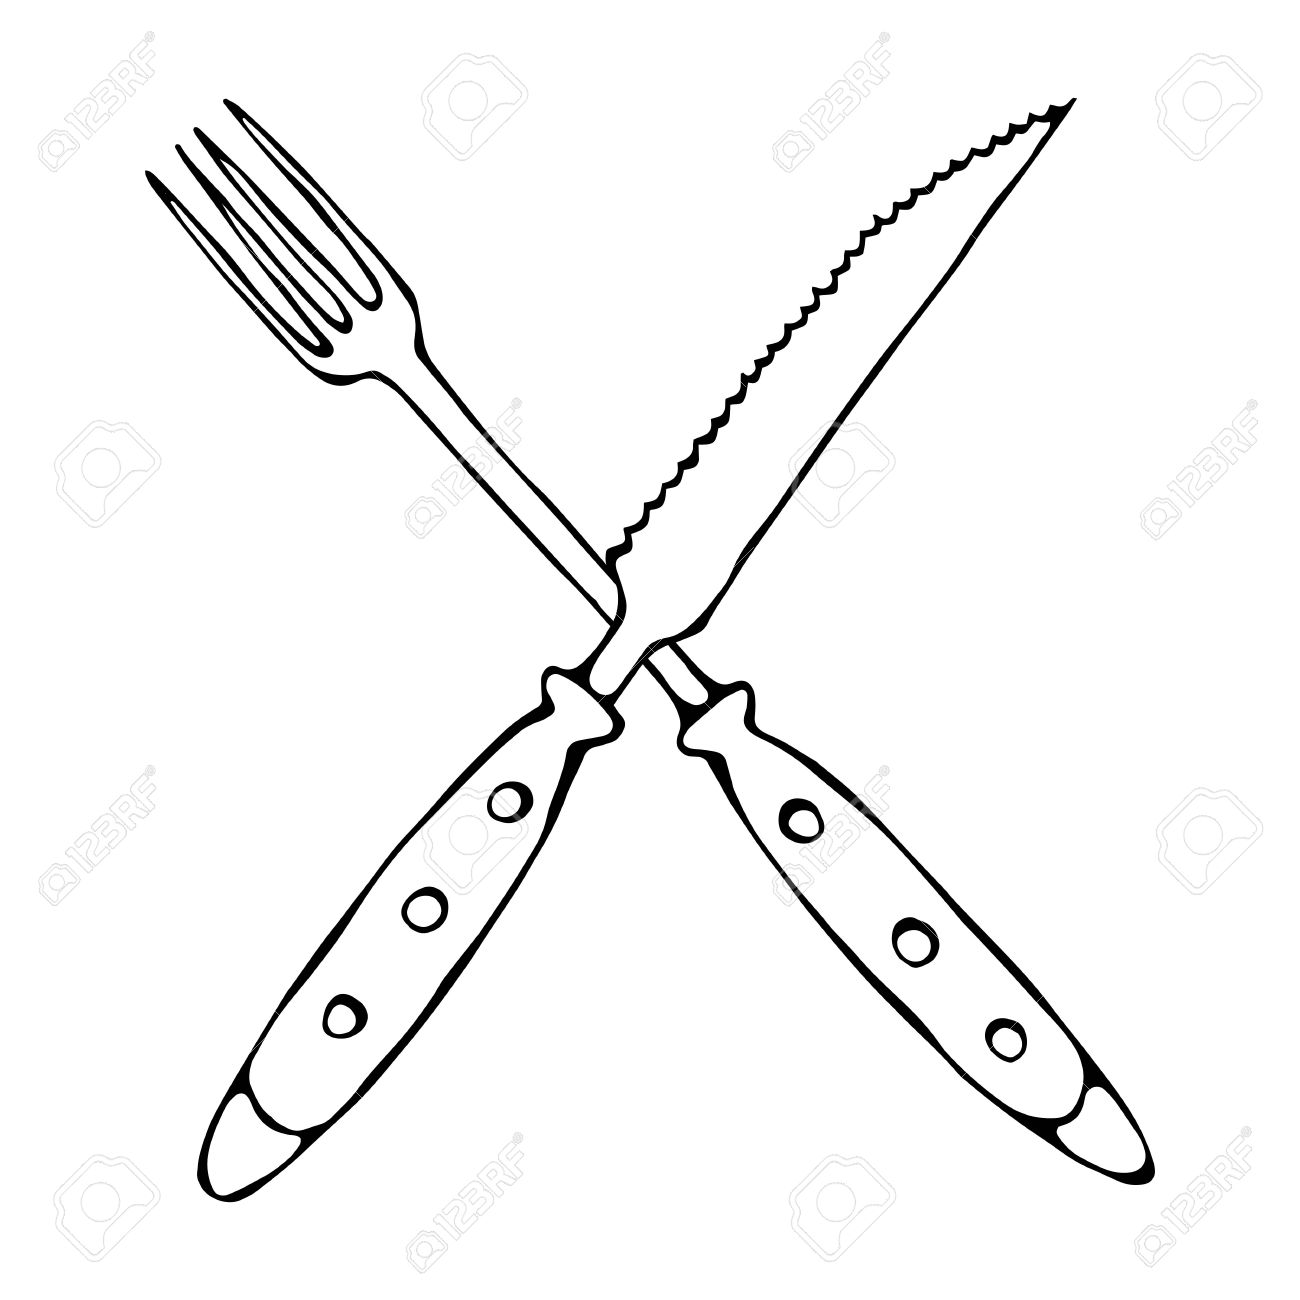 Knife And Fork Drawing At Getdrawings